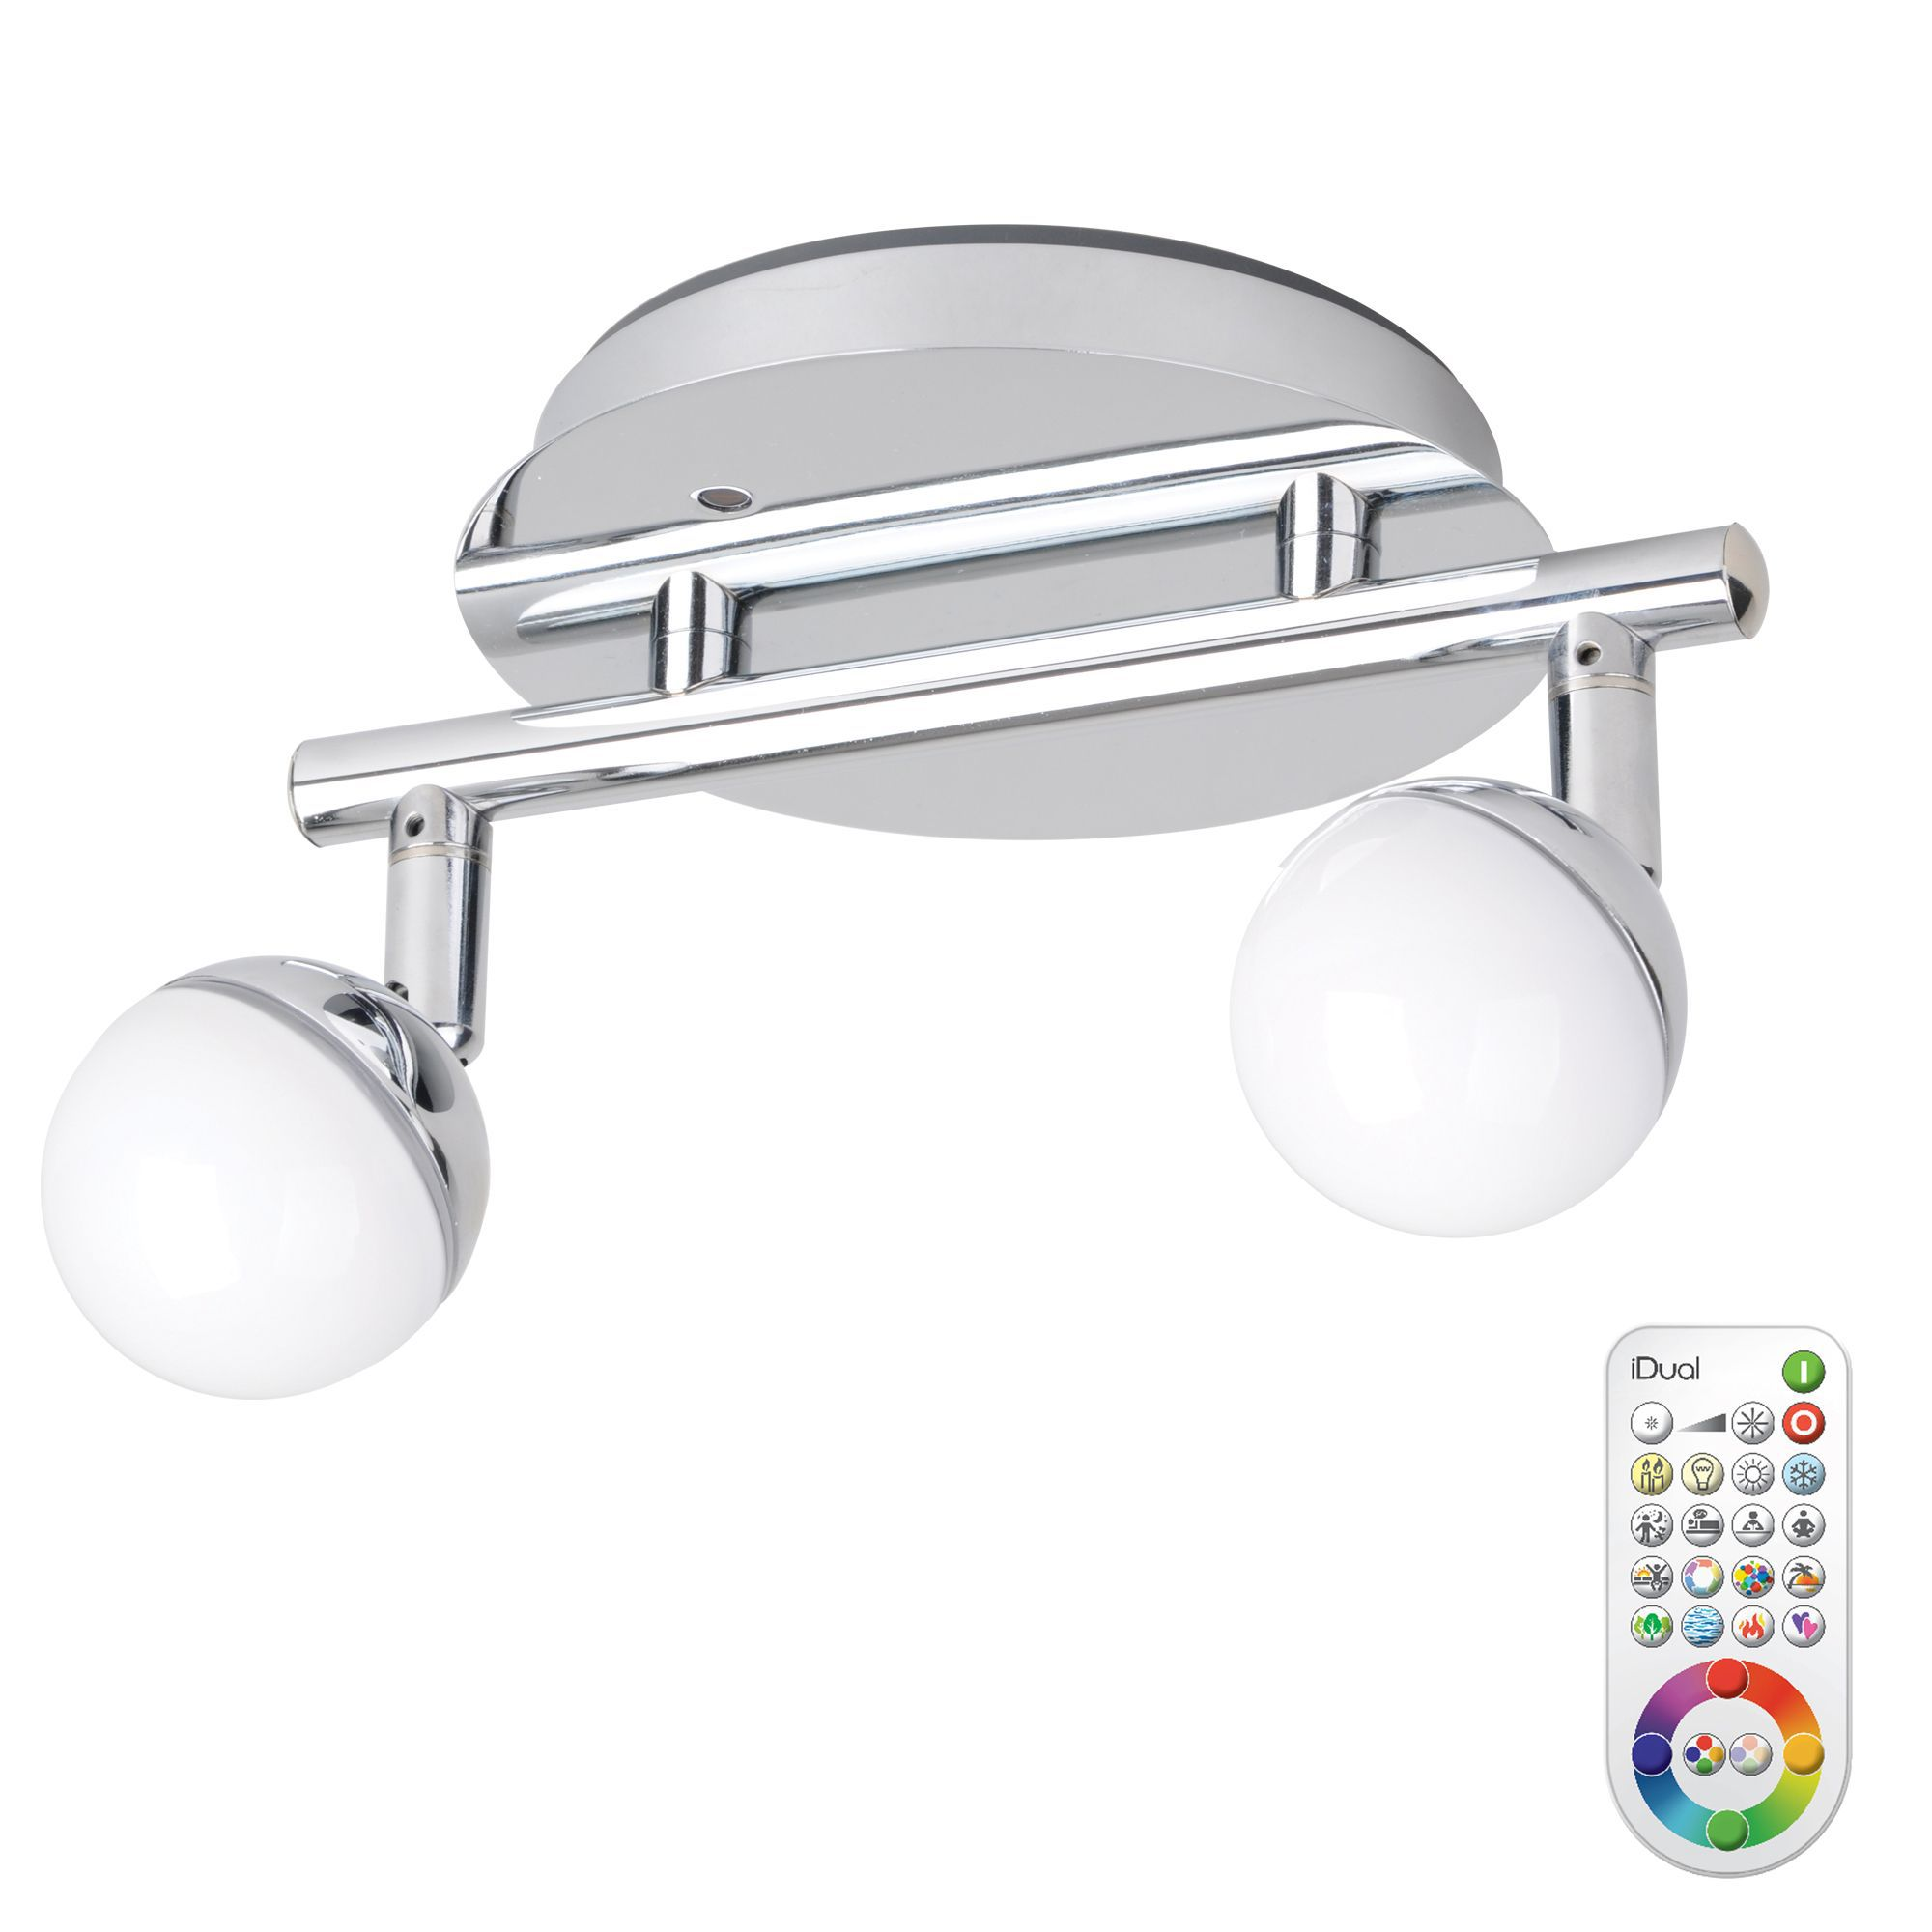 Idual Olivine Chrome Effect 2 Lamp Spotlight With Remote